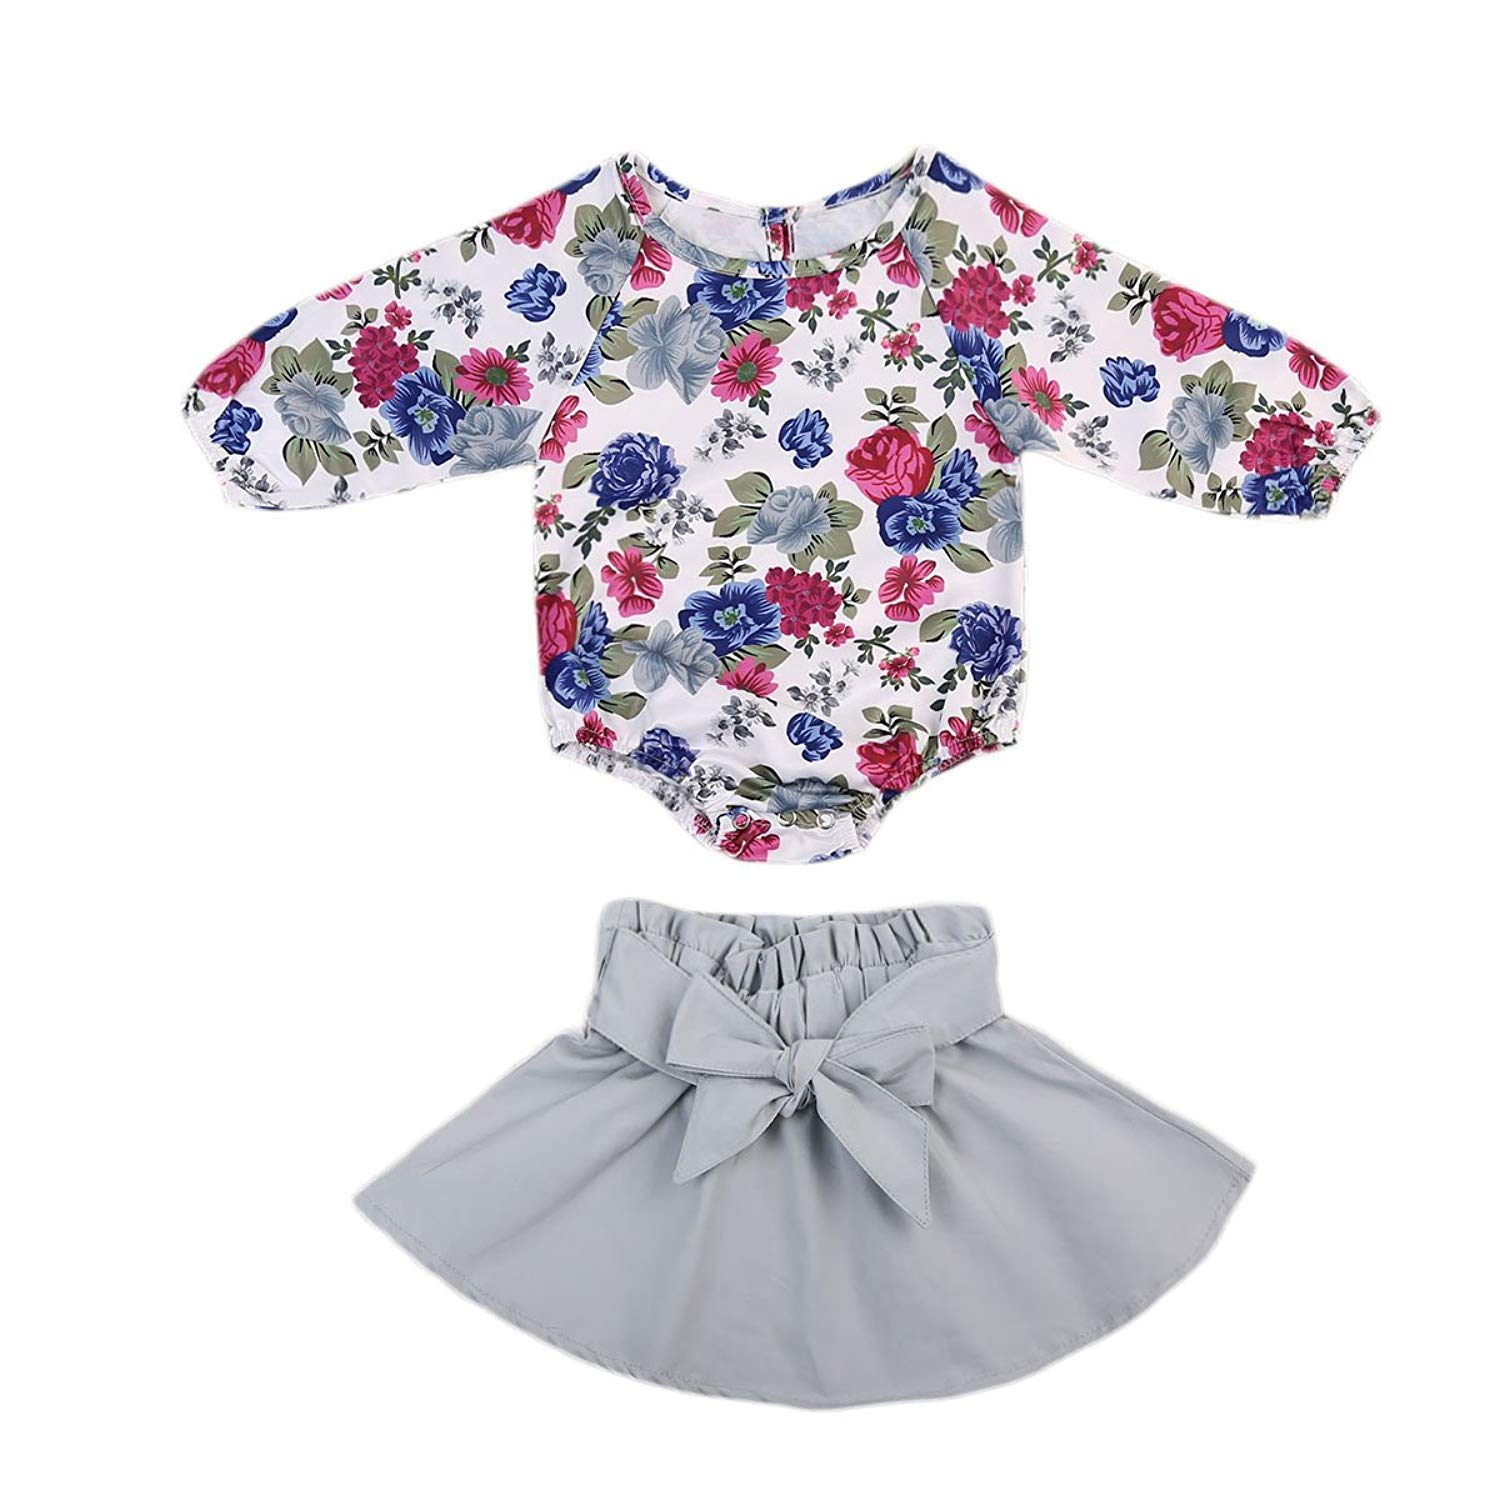 e9ac9f1110 Amazon.com  Infant Baby Girls Skirt Outfit Set Floral Romper Jumpsuit Shirt+Tutu  Skirt Princess Party Ruffle Dress Summer Clothes  Clothing